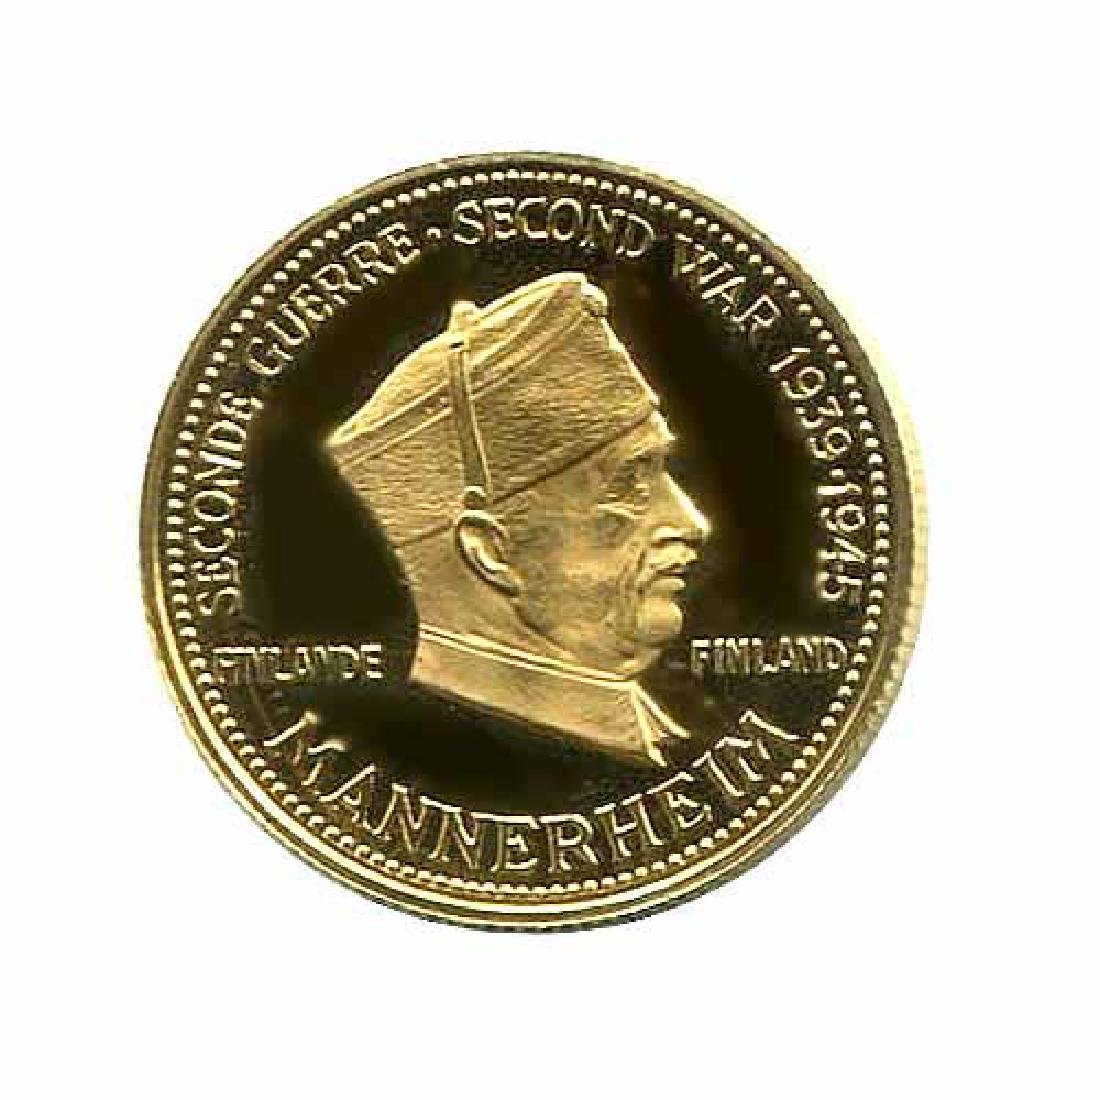 WWII Commemorative Proof Gold Medal 7g. 1958 Mannerheim